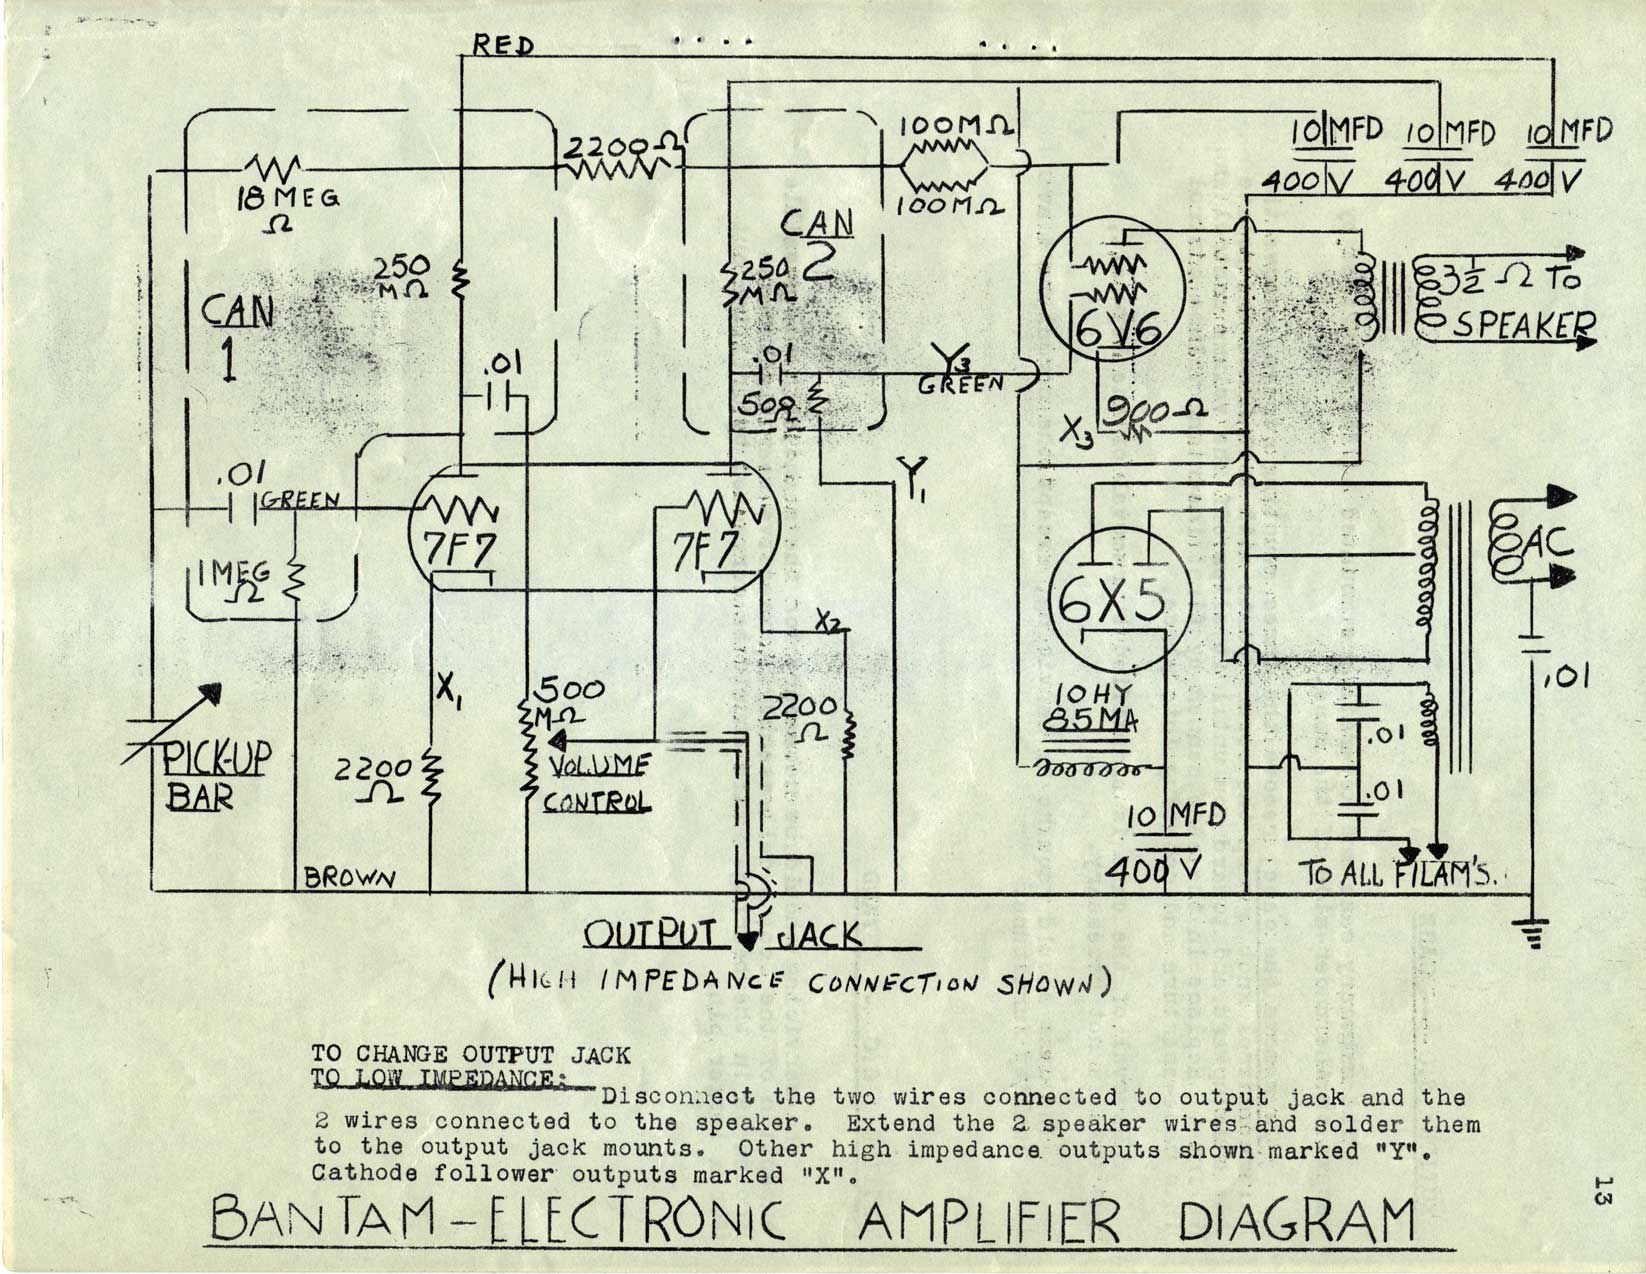 Fender Rhodes Wiring Diagram 28 Images Champ Diagrams Bantam Electronic Amplifier